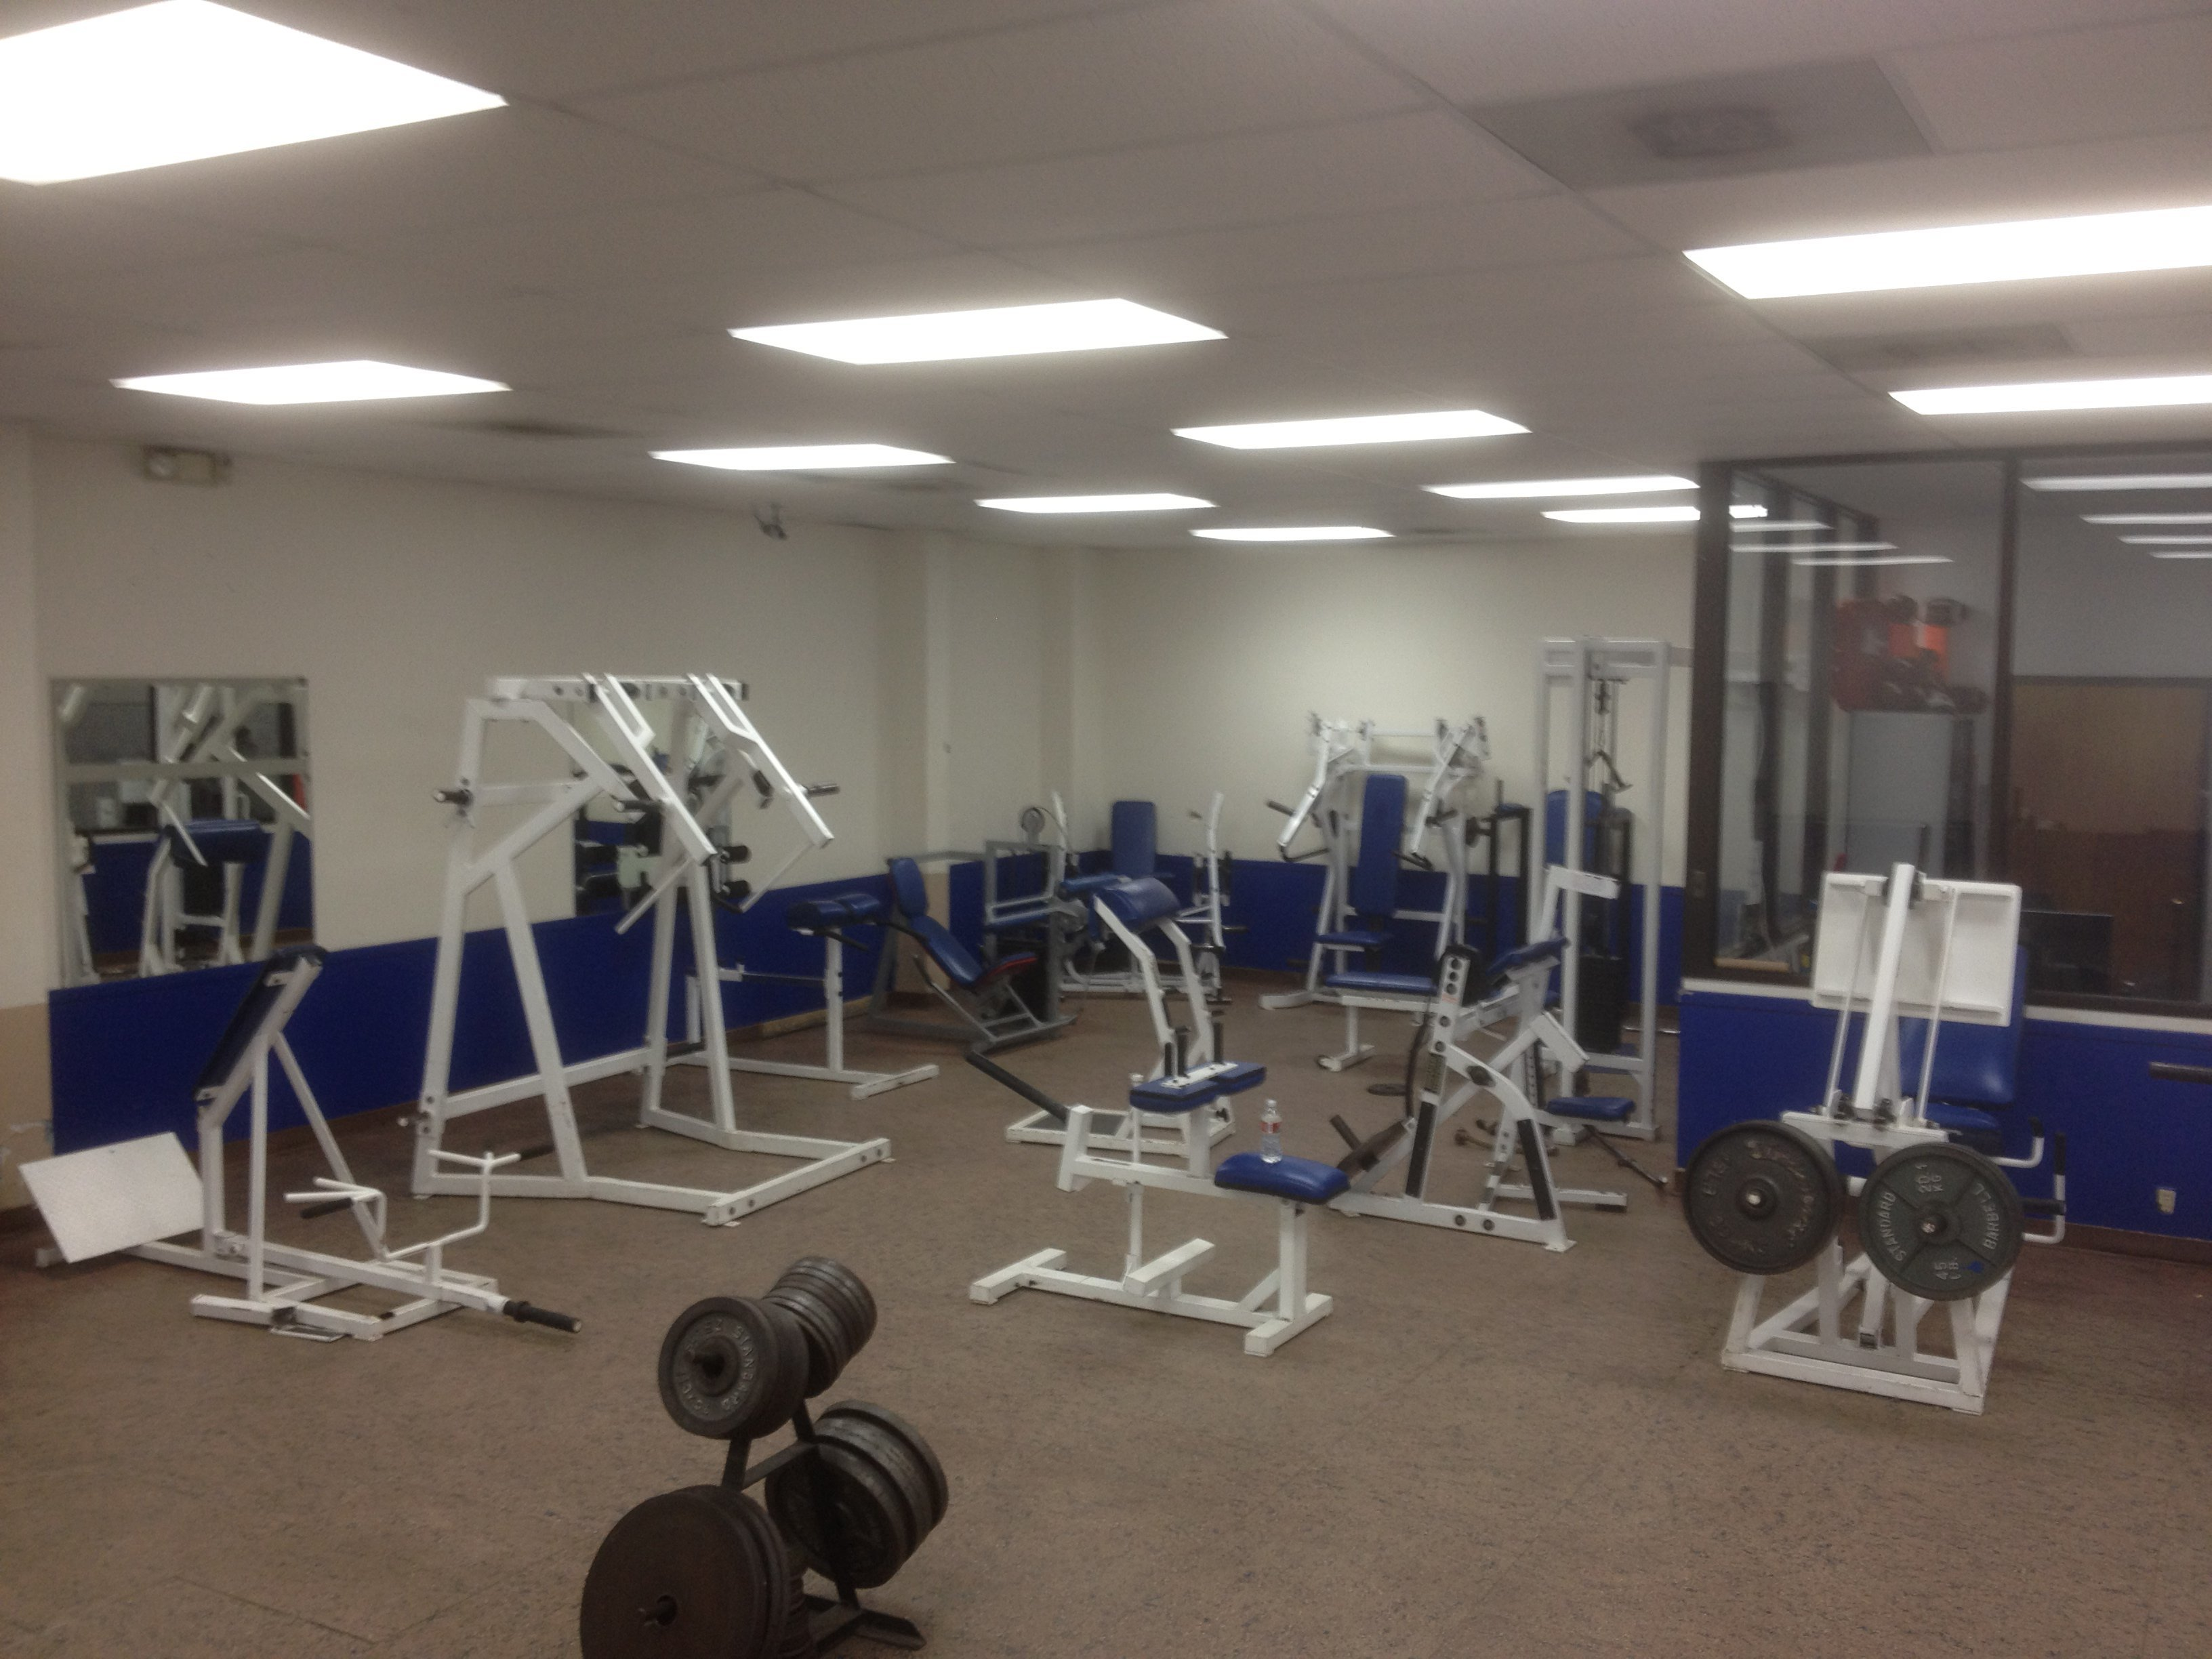 Weight-Room2.JPG#asset:1888